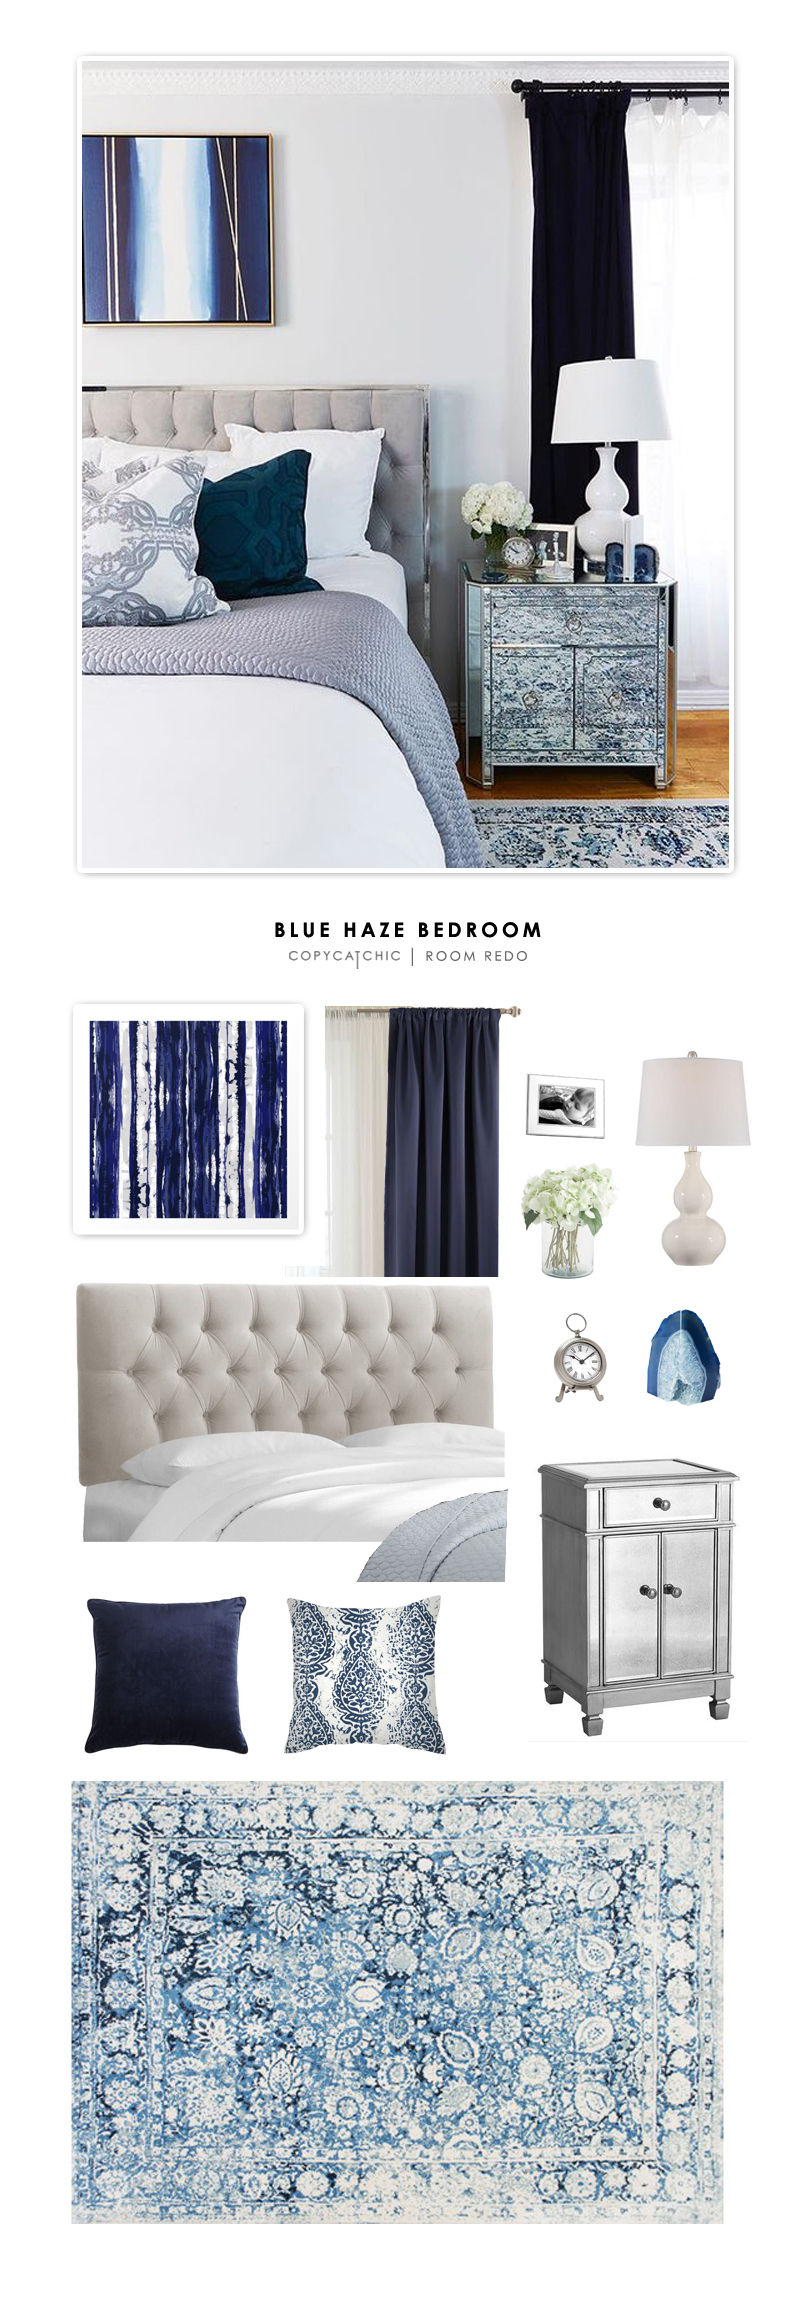 This sophisticated blue master bedroom by Margo & Me is recreated for less by @copycatchic | budget home decor looks for less and home design